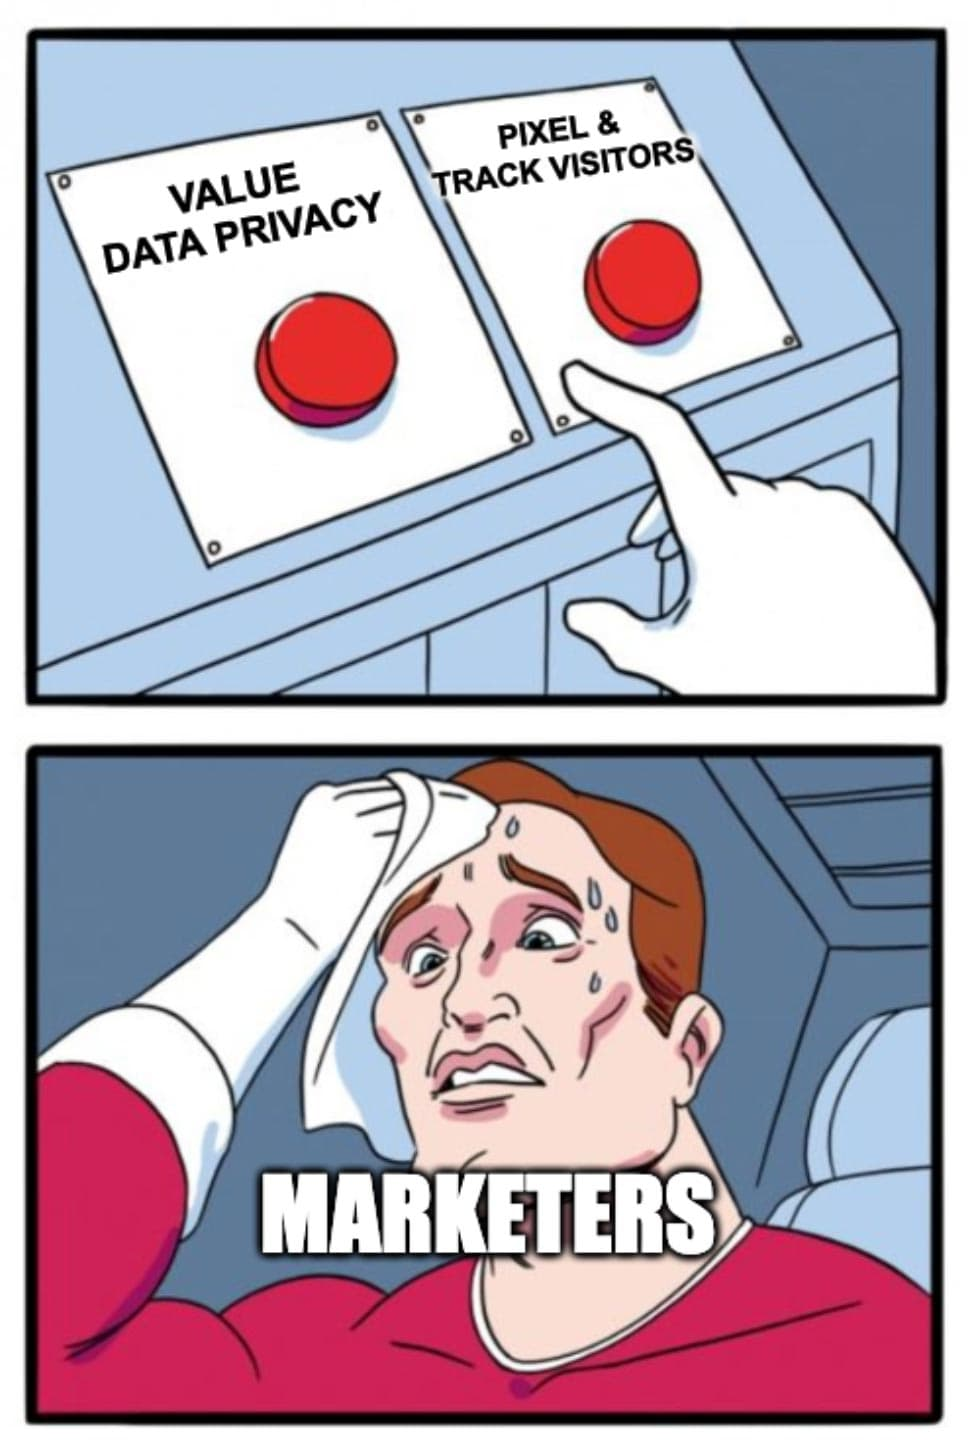 The ethical marketer's dilemma.